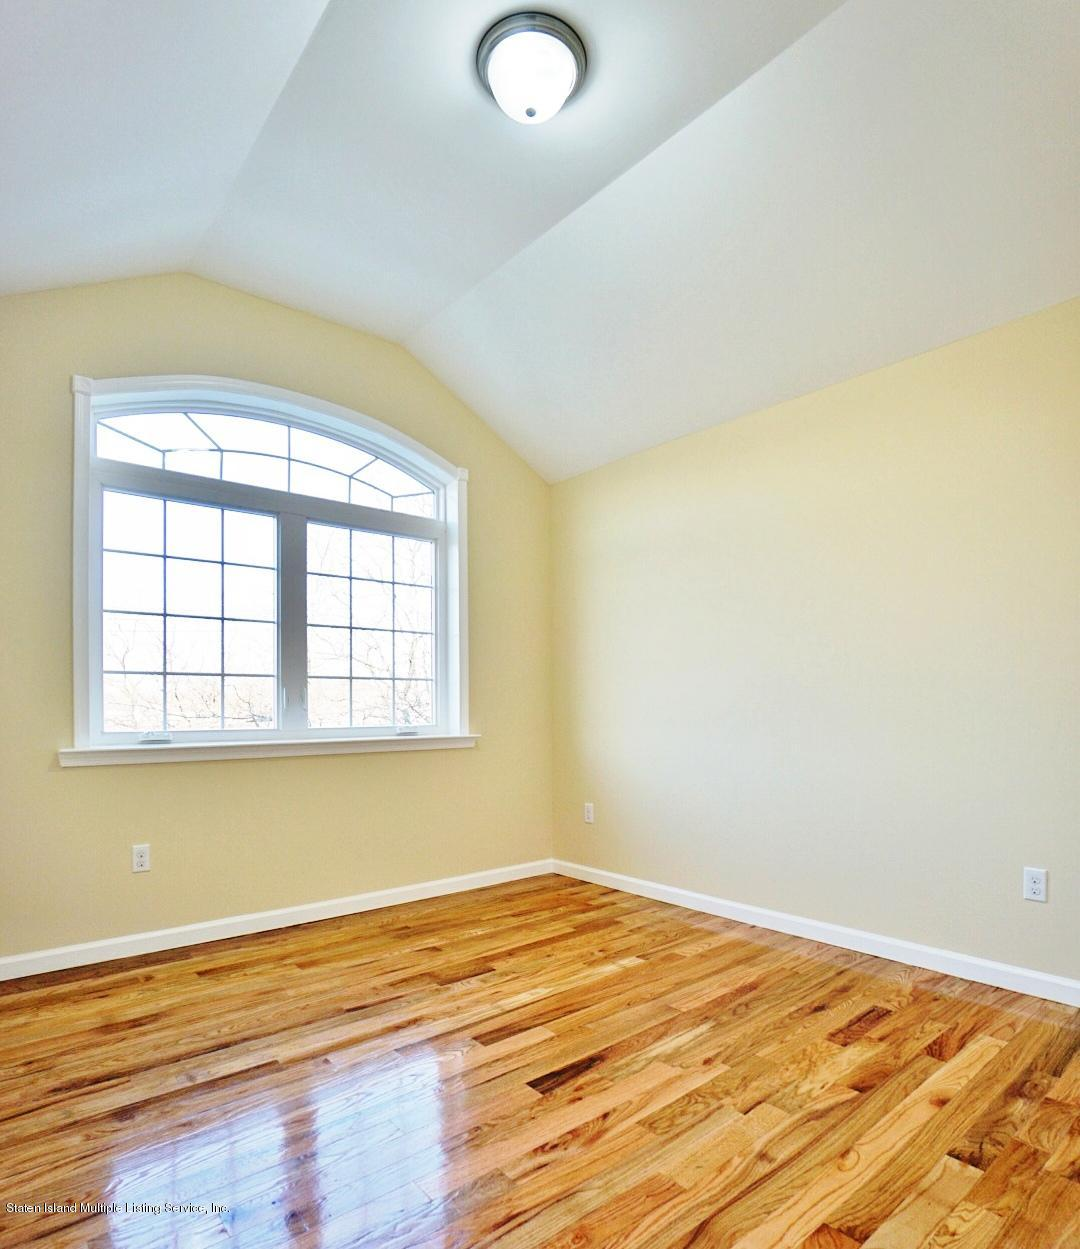 Single Family - Attached 34 Bamberger Lane  Staten Island, NY 10312, MLS-1135521-16